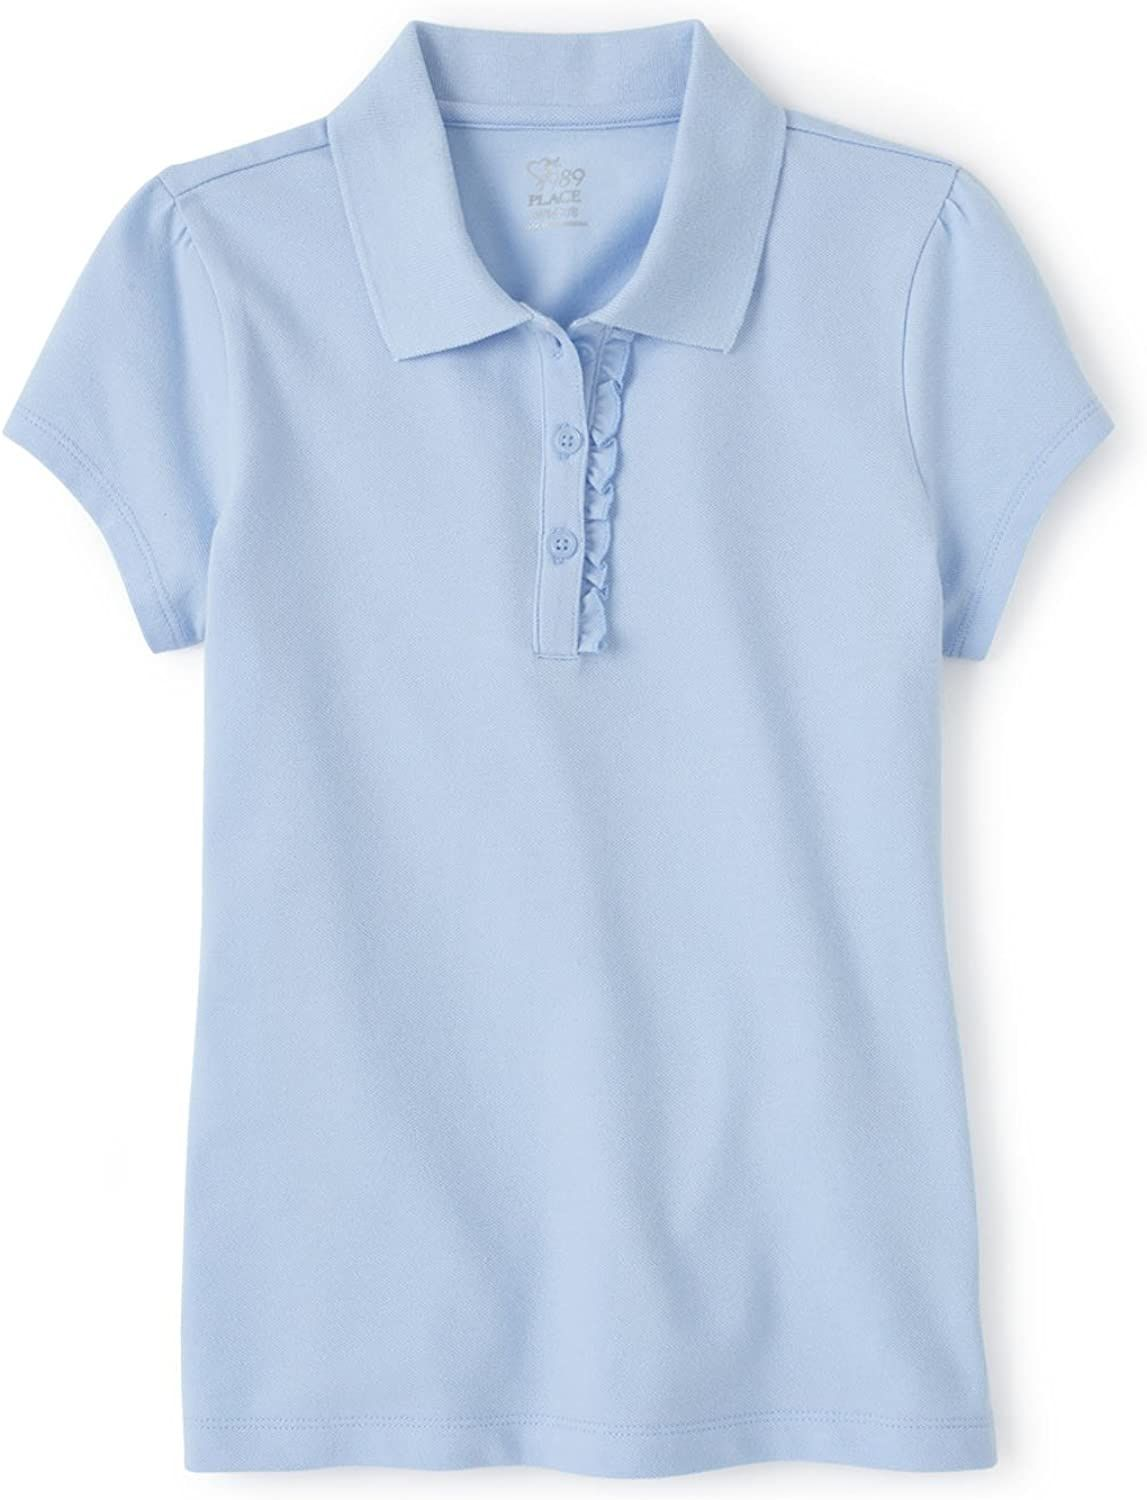 The Childrens Place Girls Uniform Short Sleeve Polo